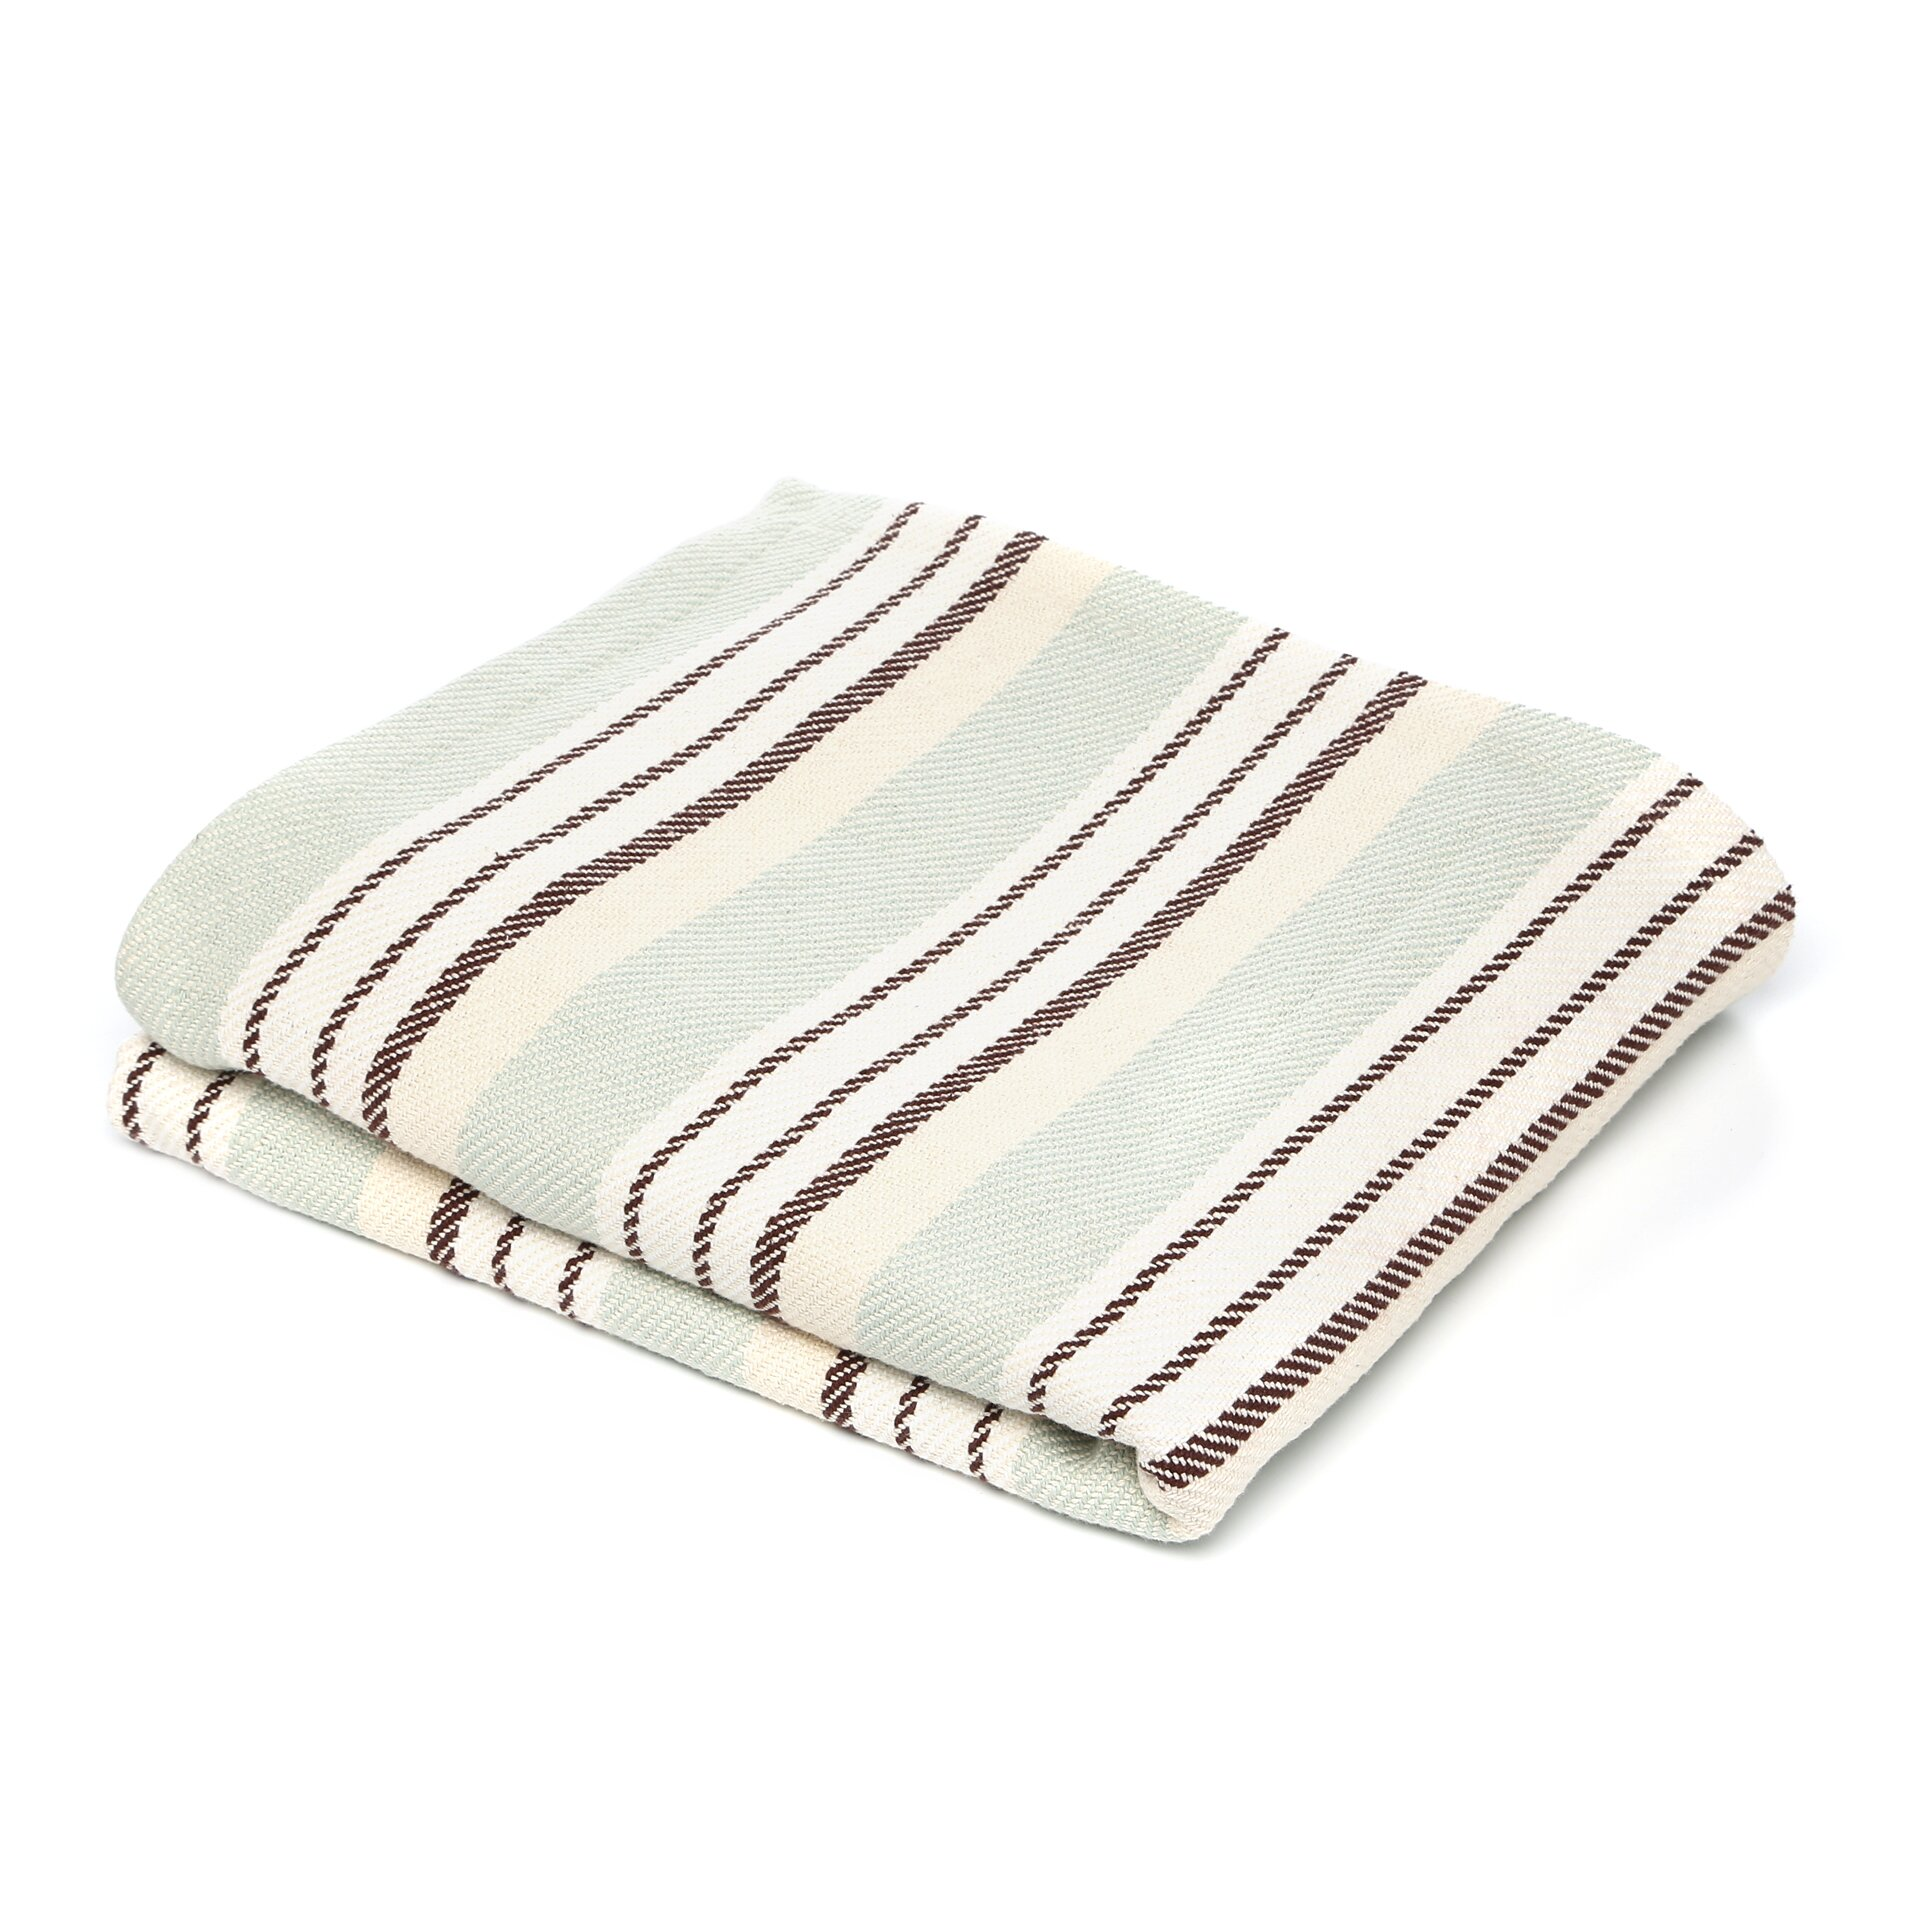 Dash and albert rugs vanilla woven cotton throw reviews for Dash and albert blankets